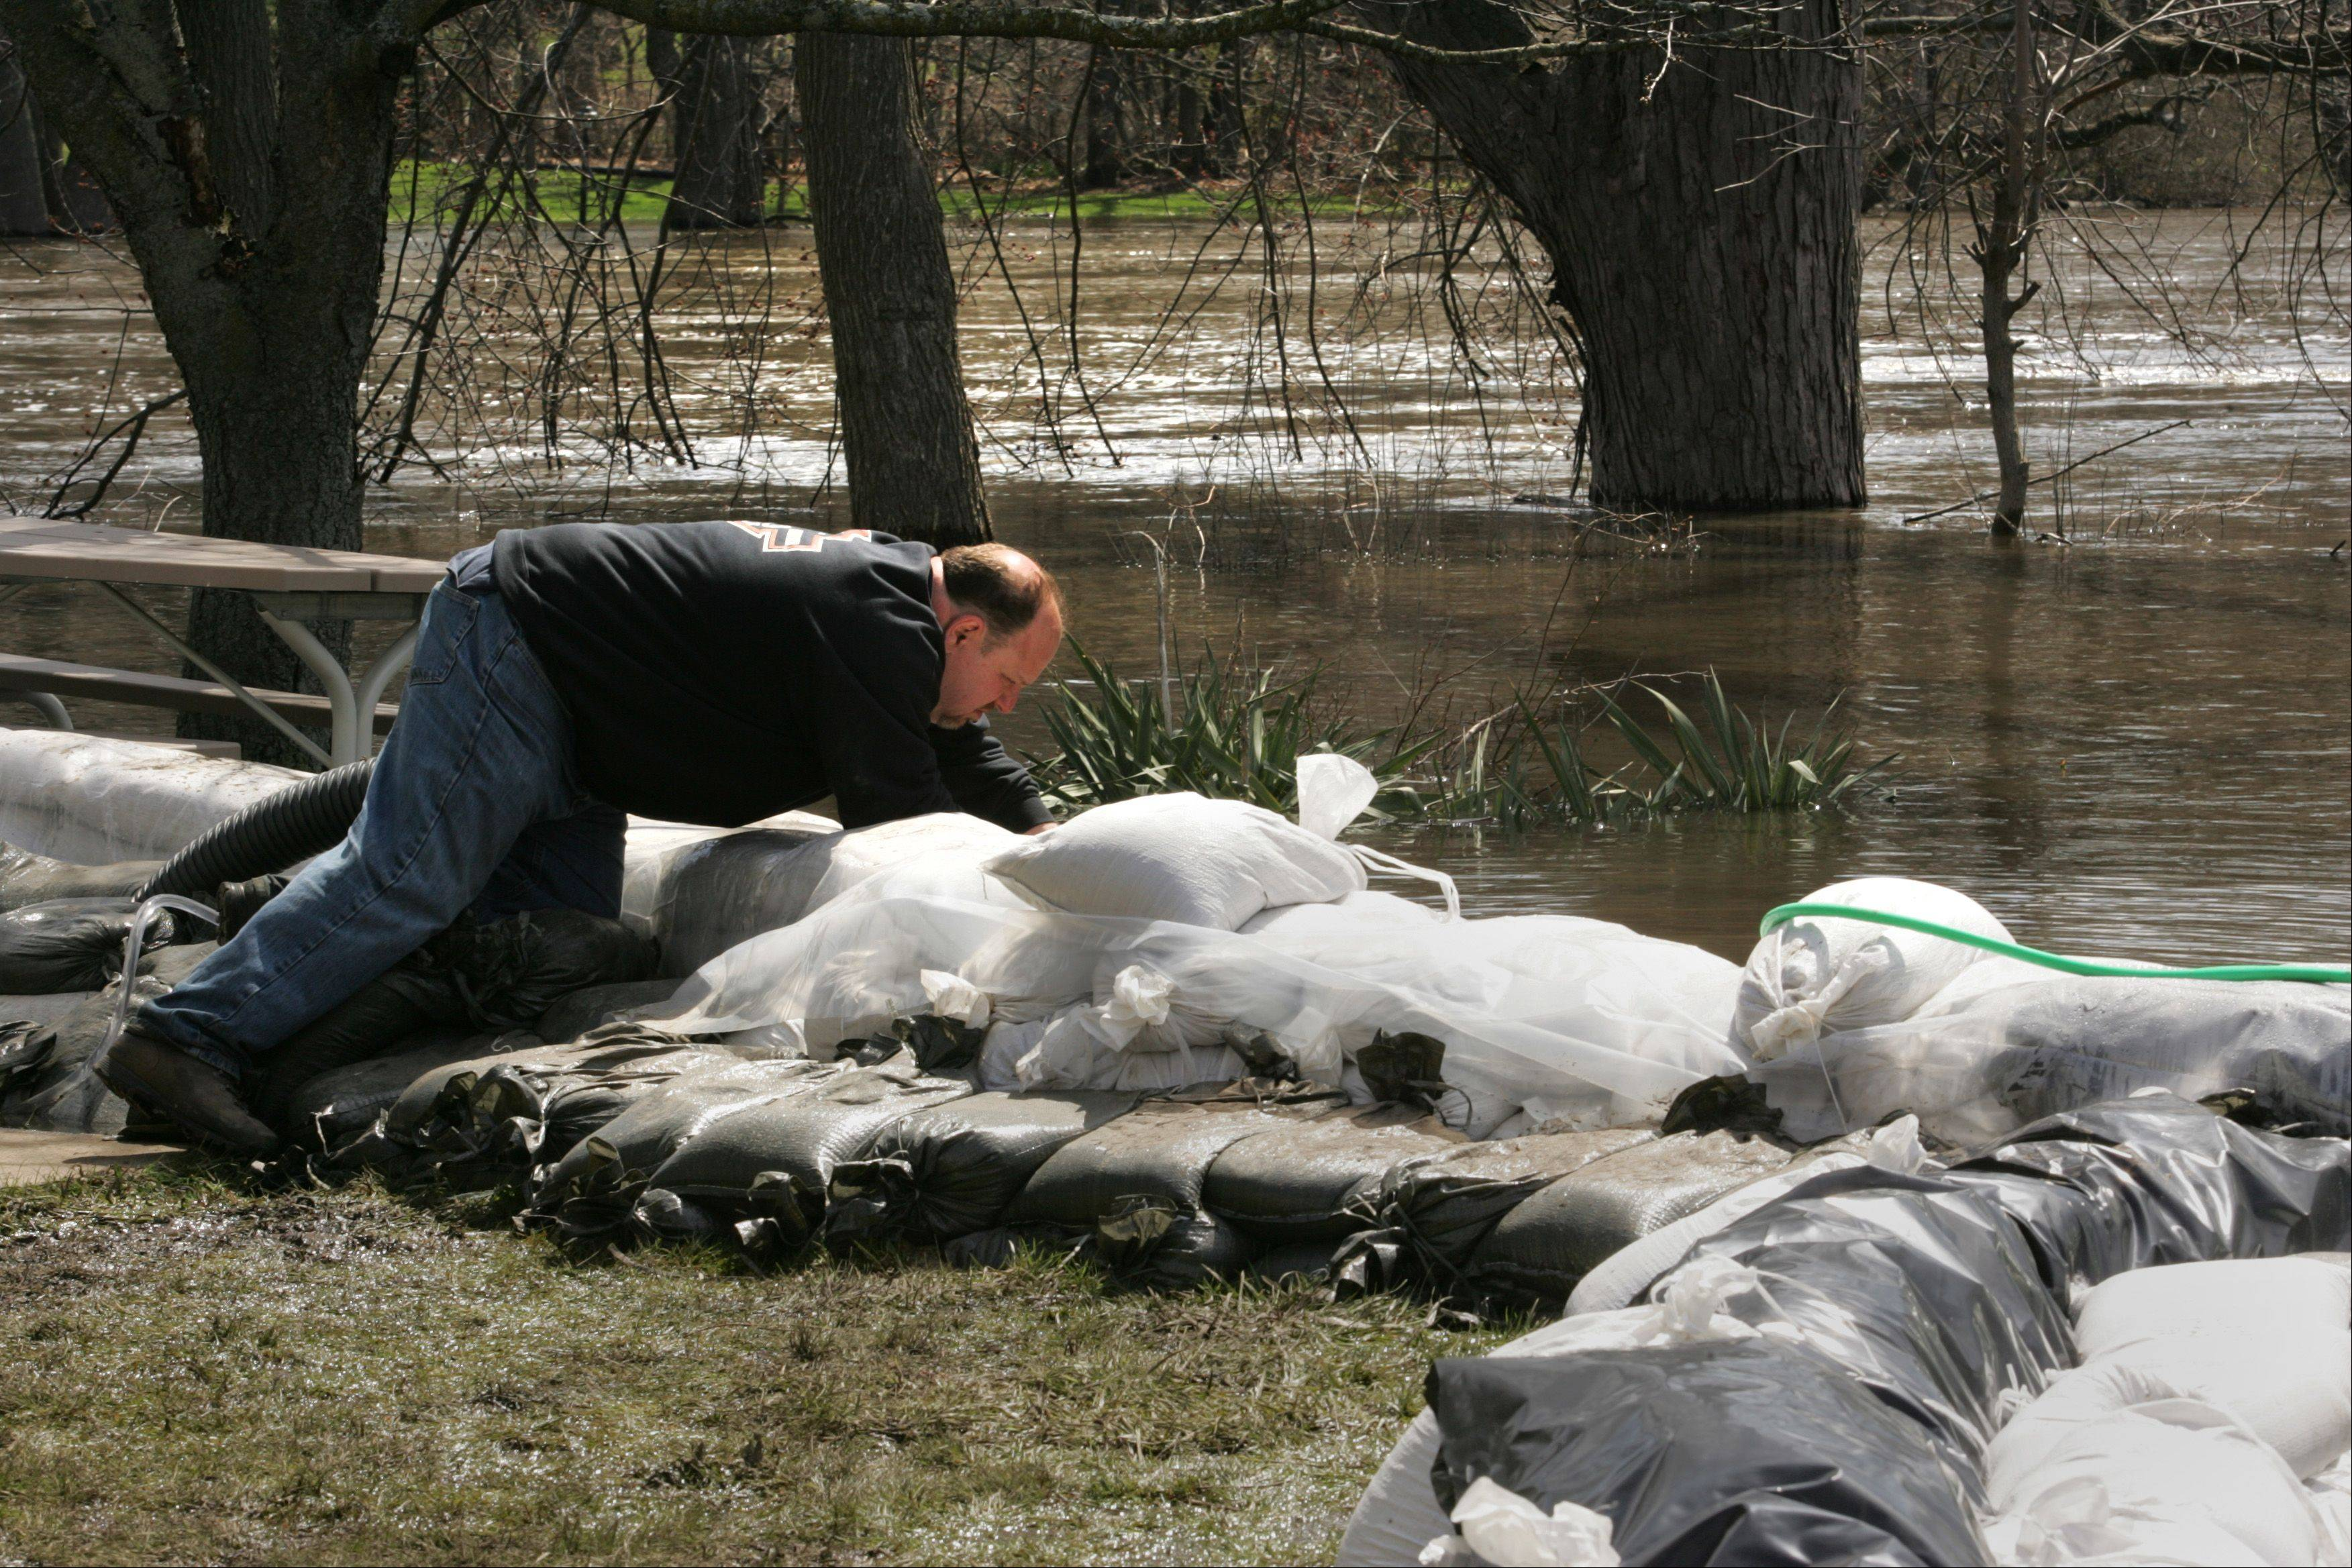 Algonquin resident Tony Angarola works to keep a sump pump hose in place behind his property along the Fox River Monday morning. Angarola rents the property to a tenant there, but has been working virtually around the clock to keep water from flooding the home.